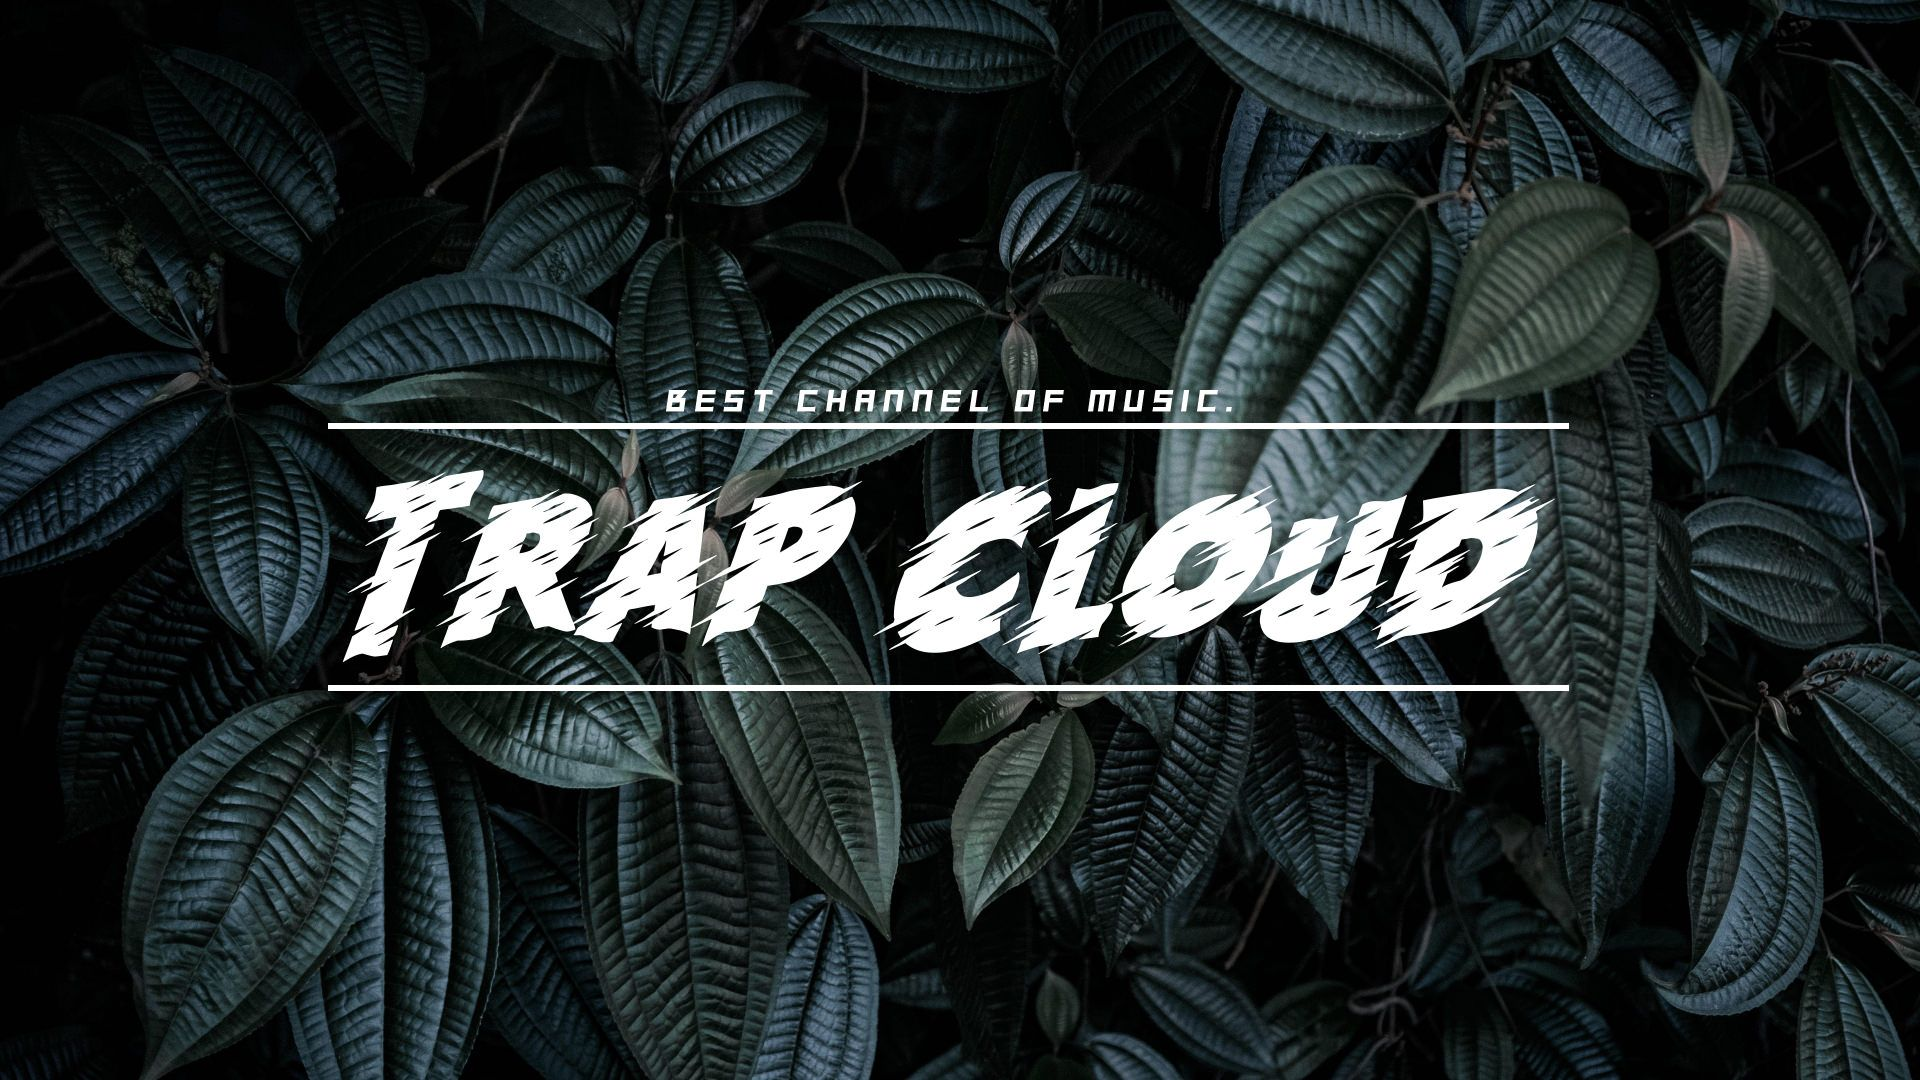 Trap Cloud Wallpapers - Álbum en Imgur